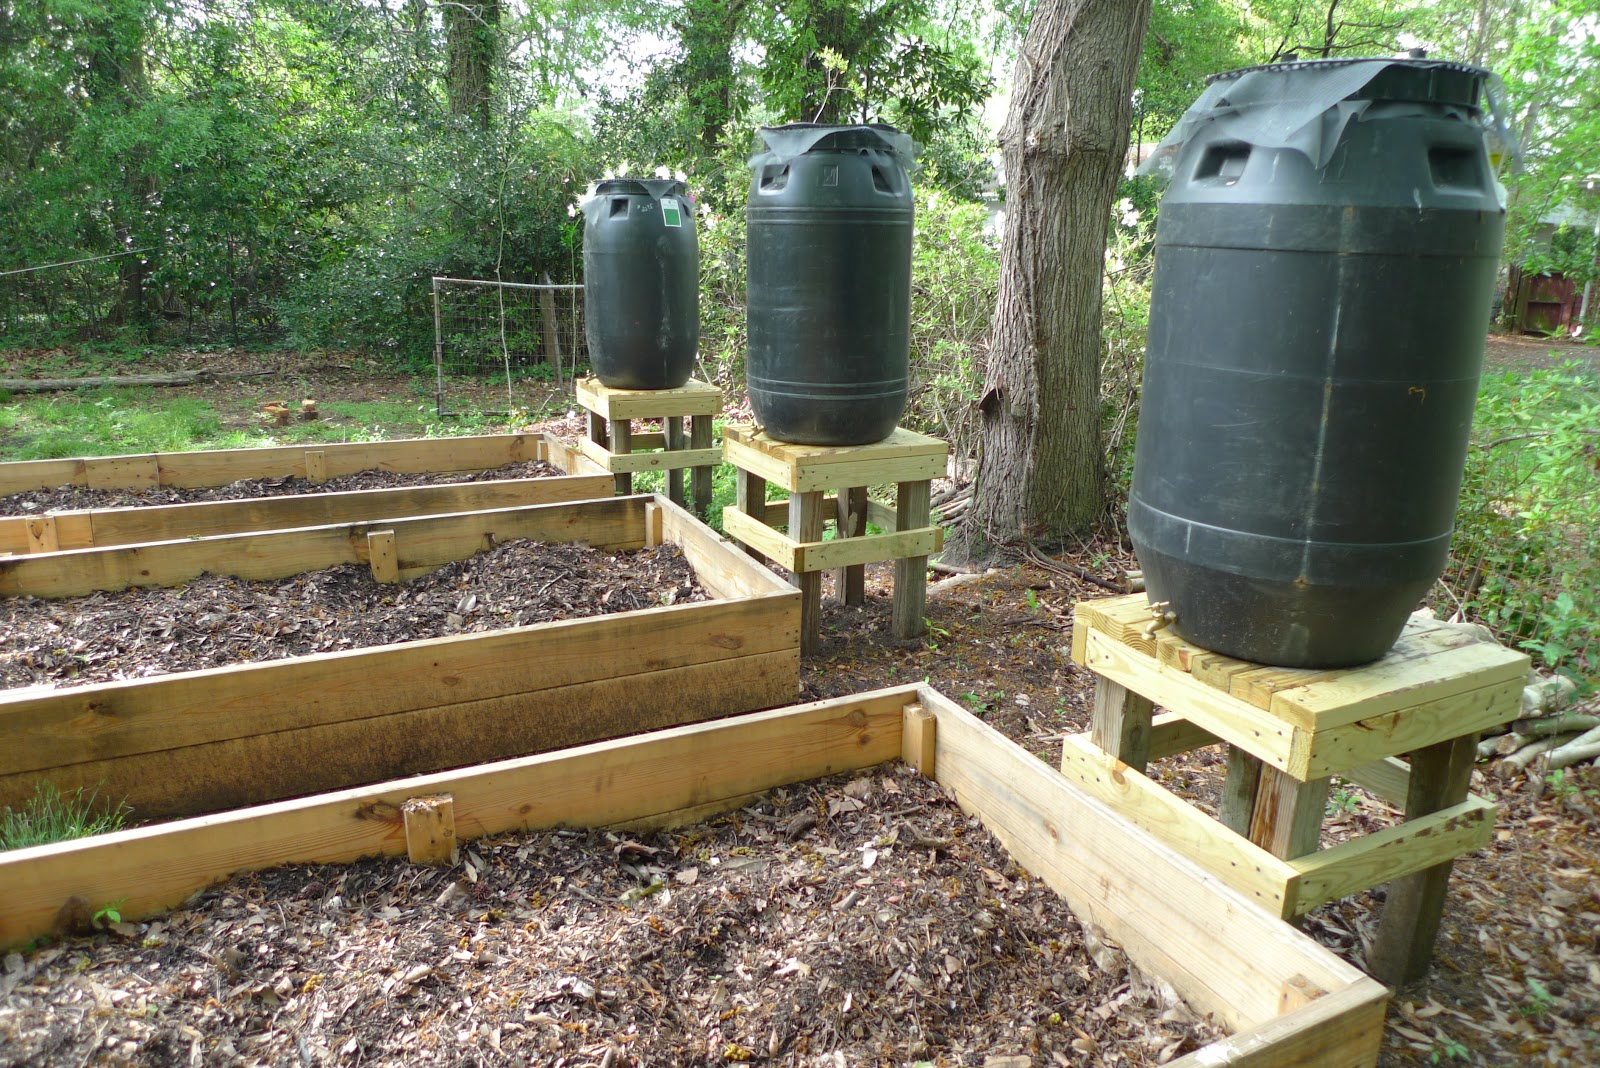 Rain barrels collection for gardening prepper days for Portable watering tanks for gardens